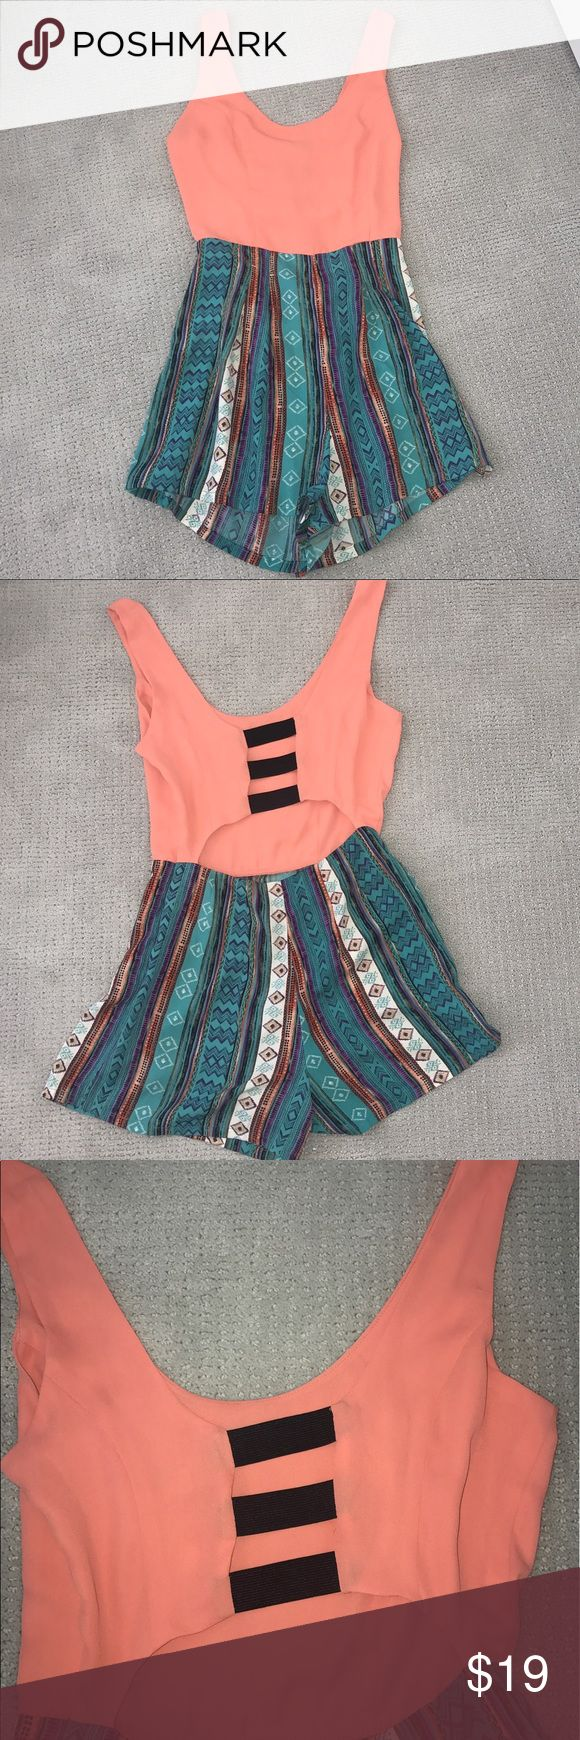 Peach top tribal print romper Super cute romper for festivals/ summertime parties etc! Sexy and fun backless detail. Only worn twice... Charlotte Russe Pants Jumpsuits & Rompers